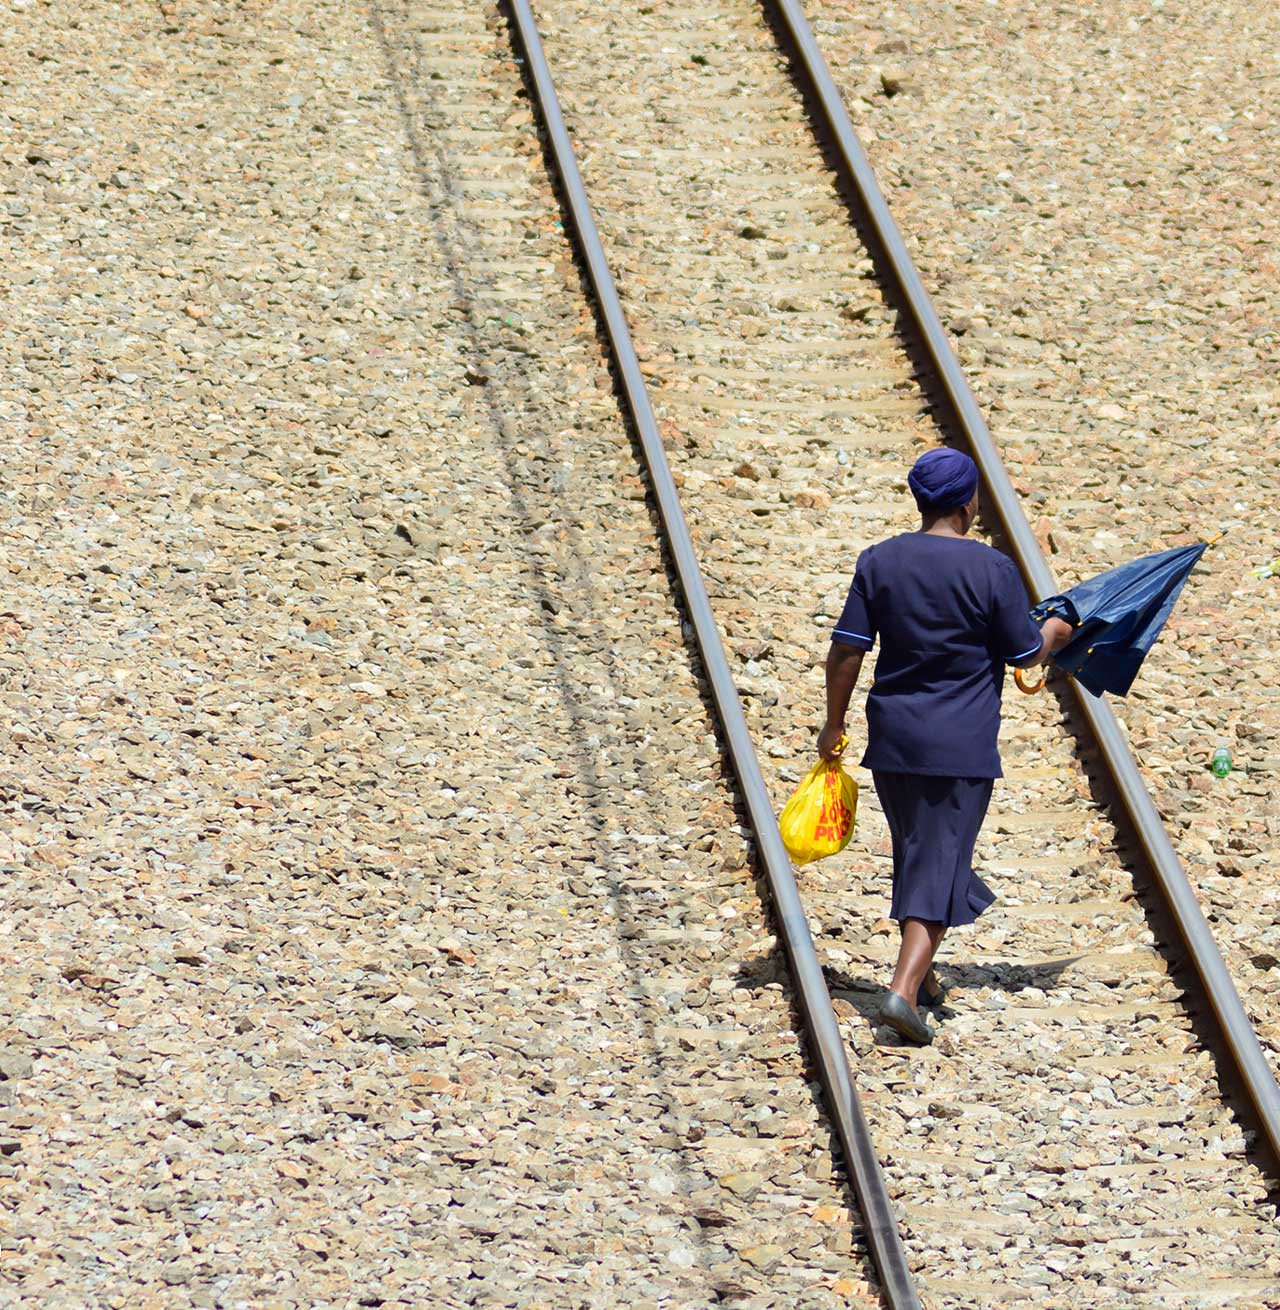 Person crossing train tracks in South Africa